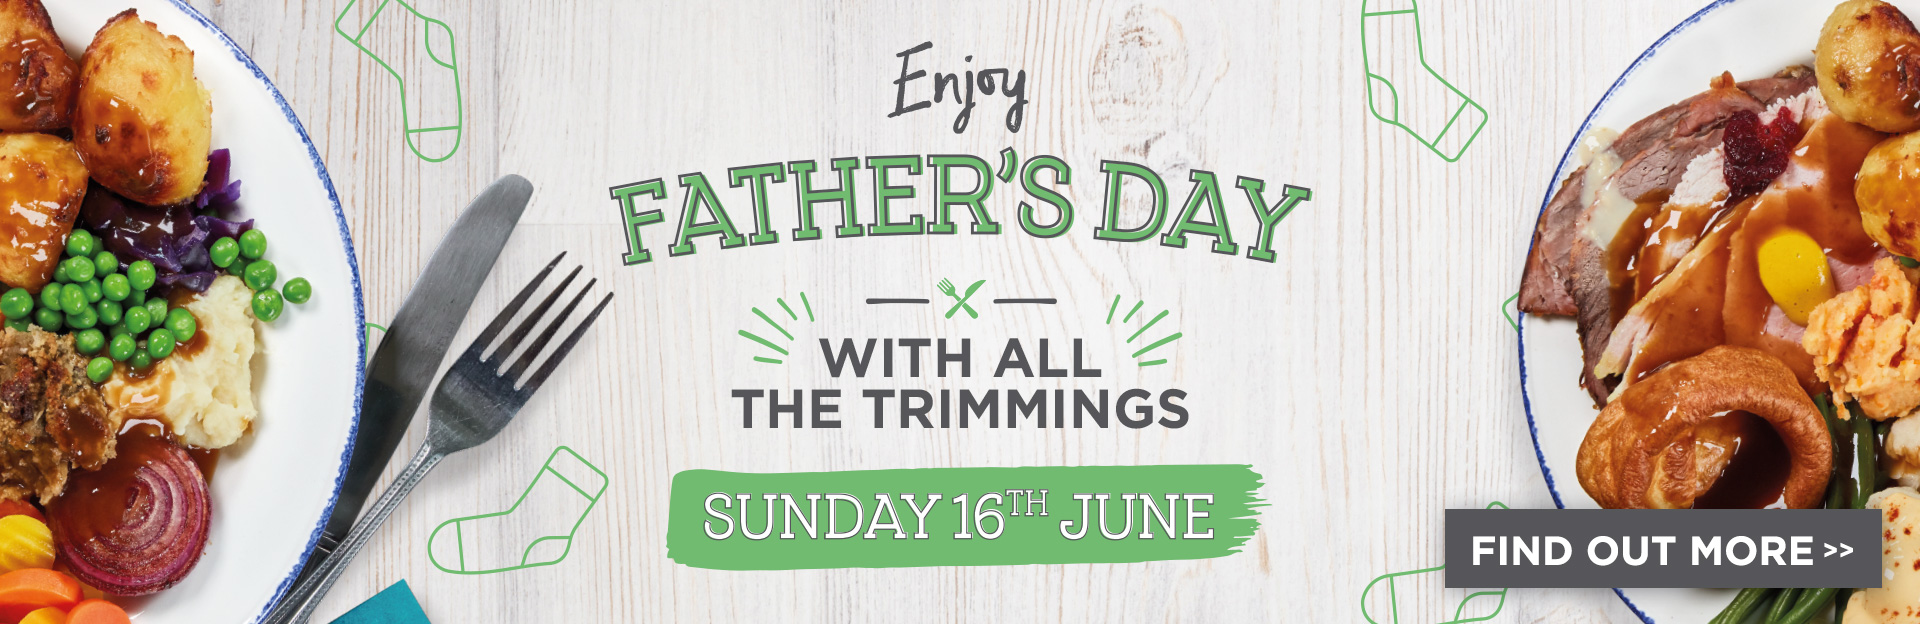 Father's Day at The Barley Mow